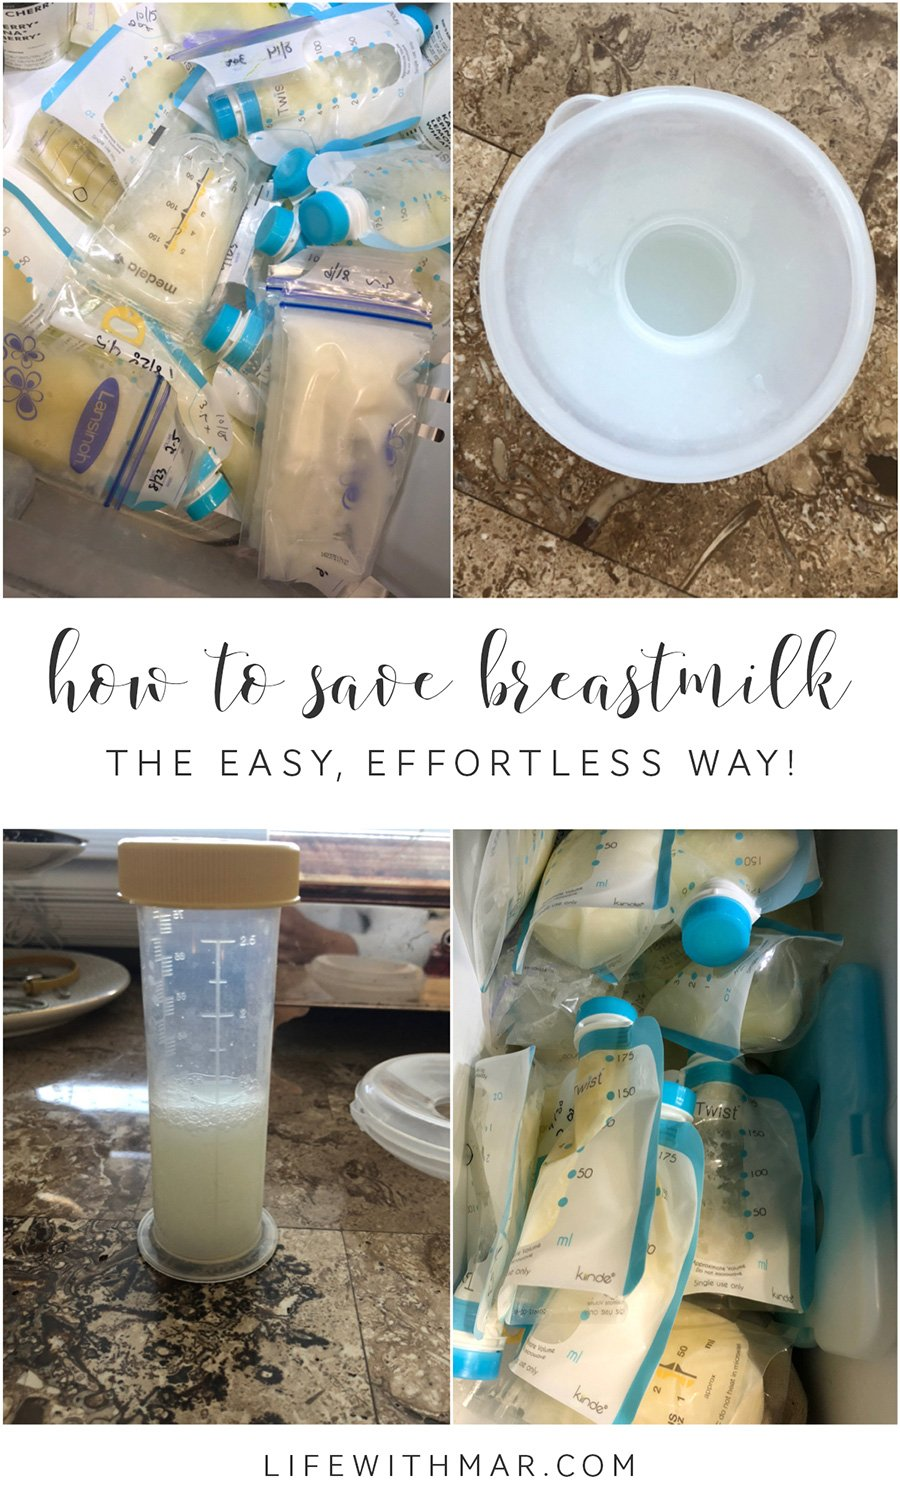 lacti cups review, the easiest way to save breastmilk every with seriously no effort!